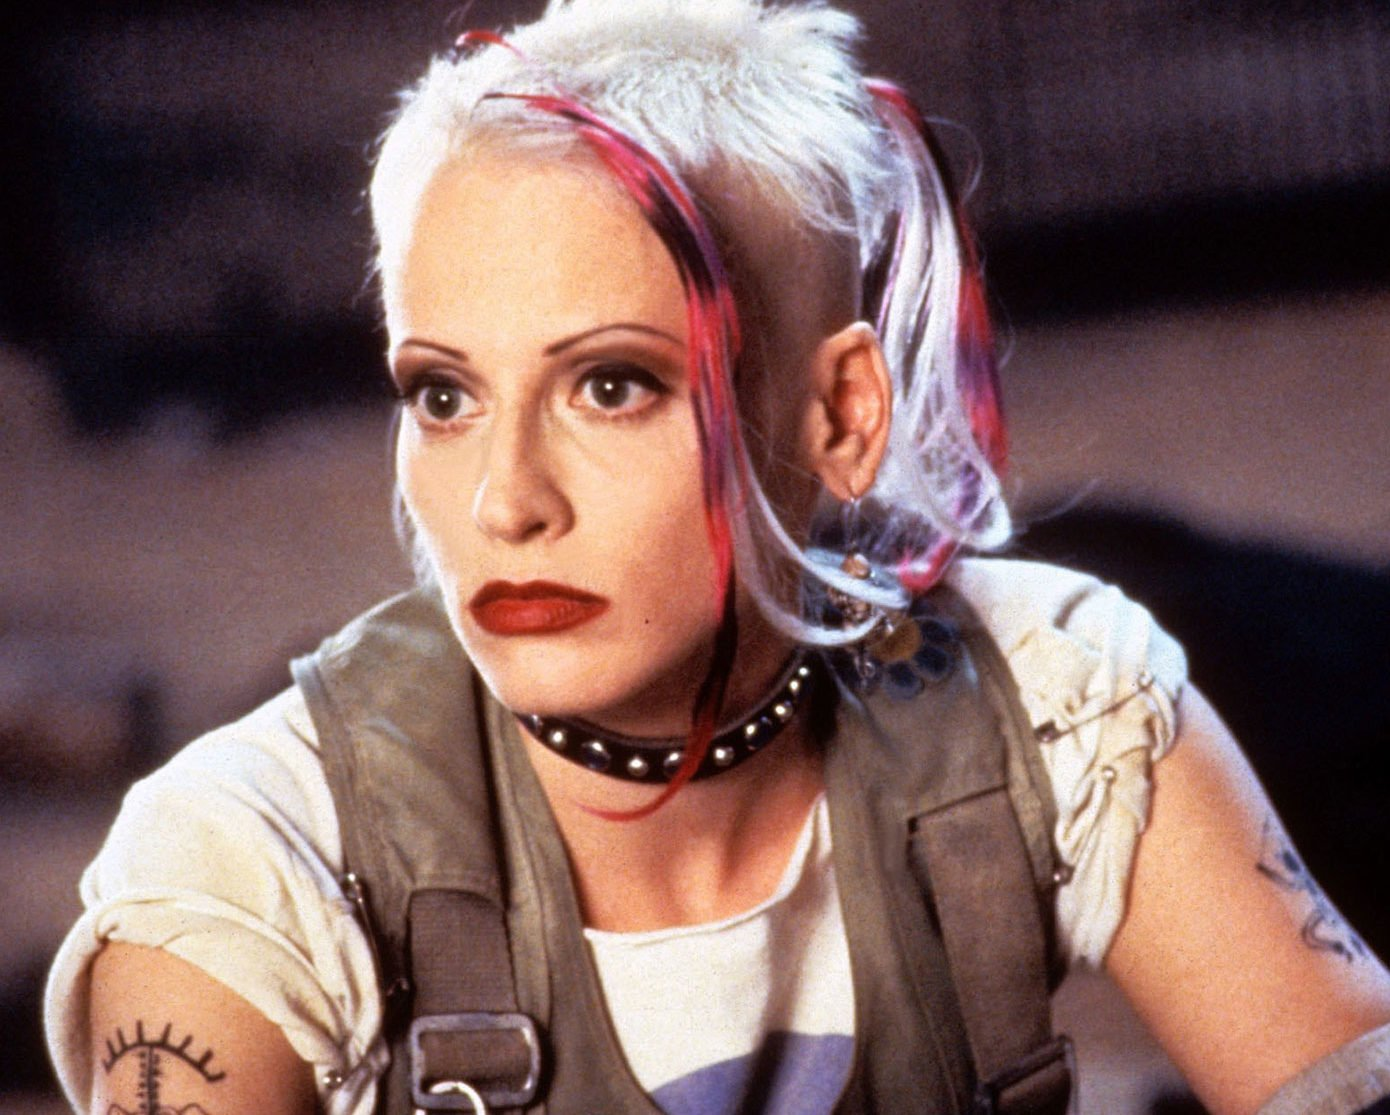 HTRA224 VV263 e1610123923516 20 Things You Never Knew About The Cult Classic Movie Tank Girl